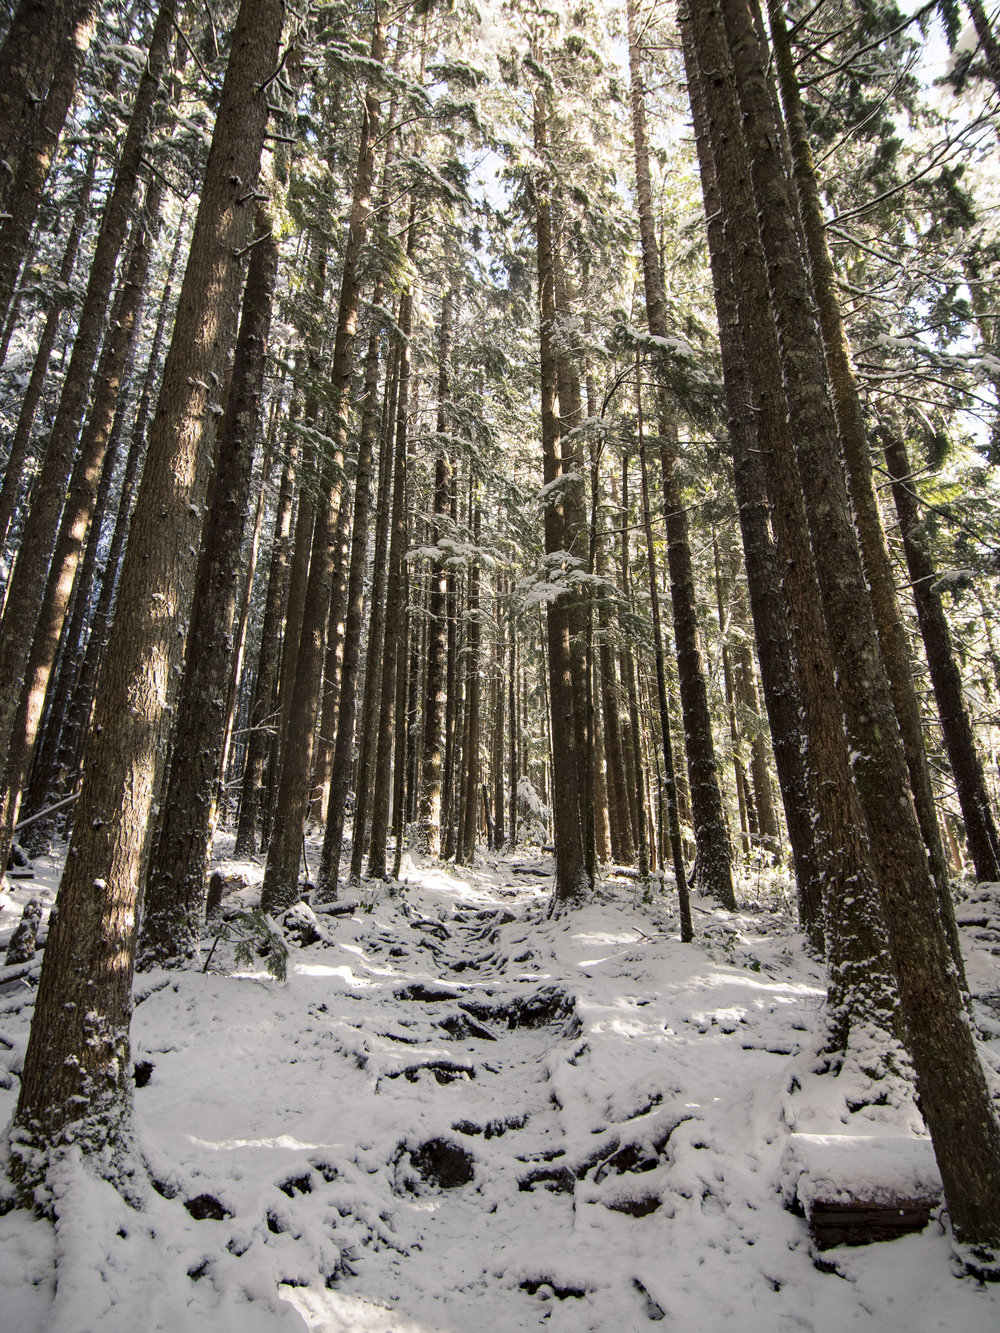 Snowy Hiking Trail Through Trees in Forest